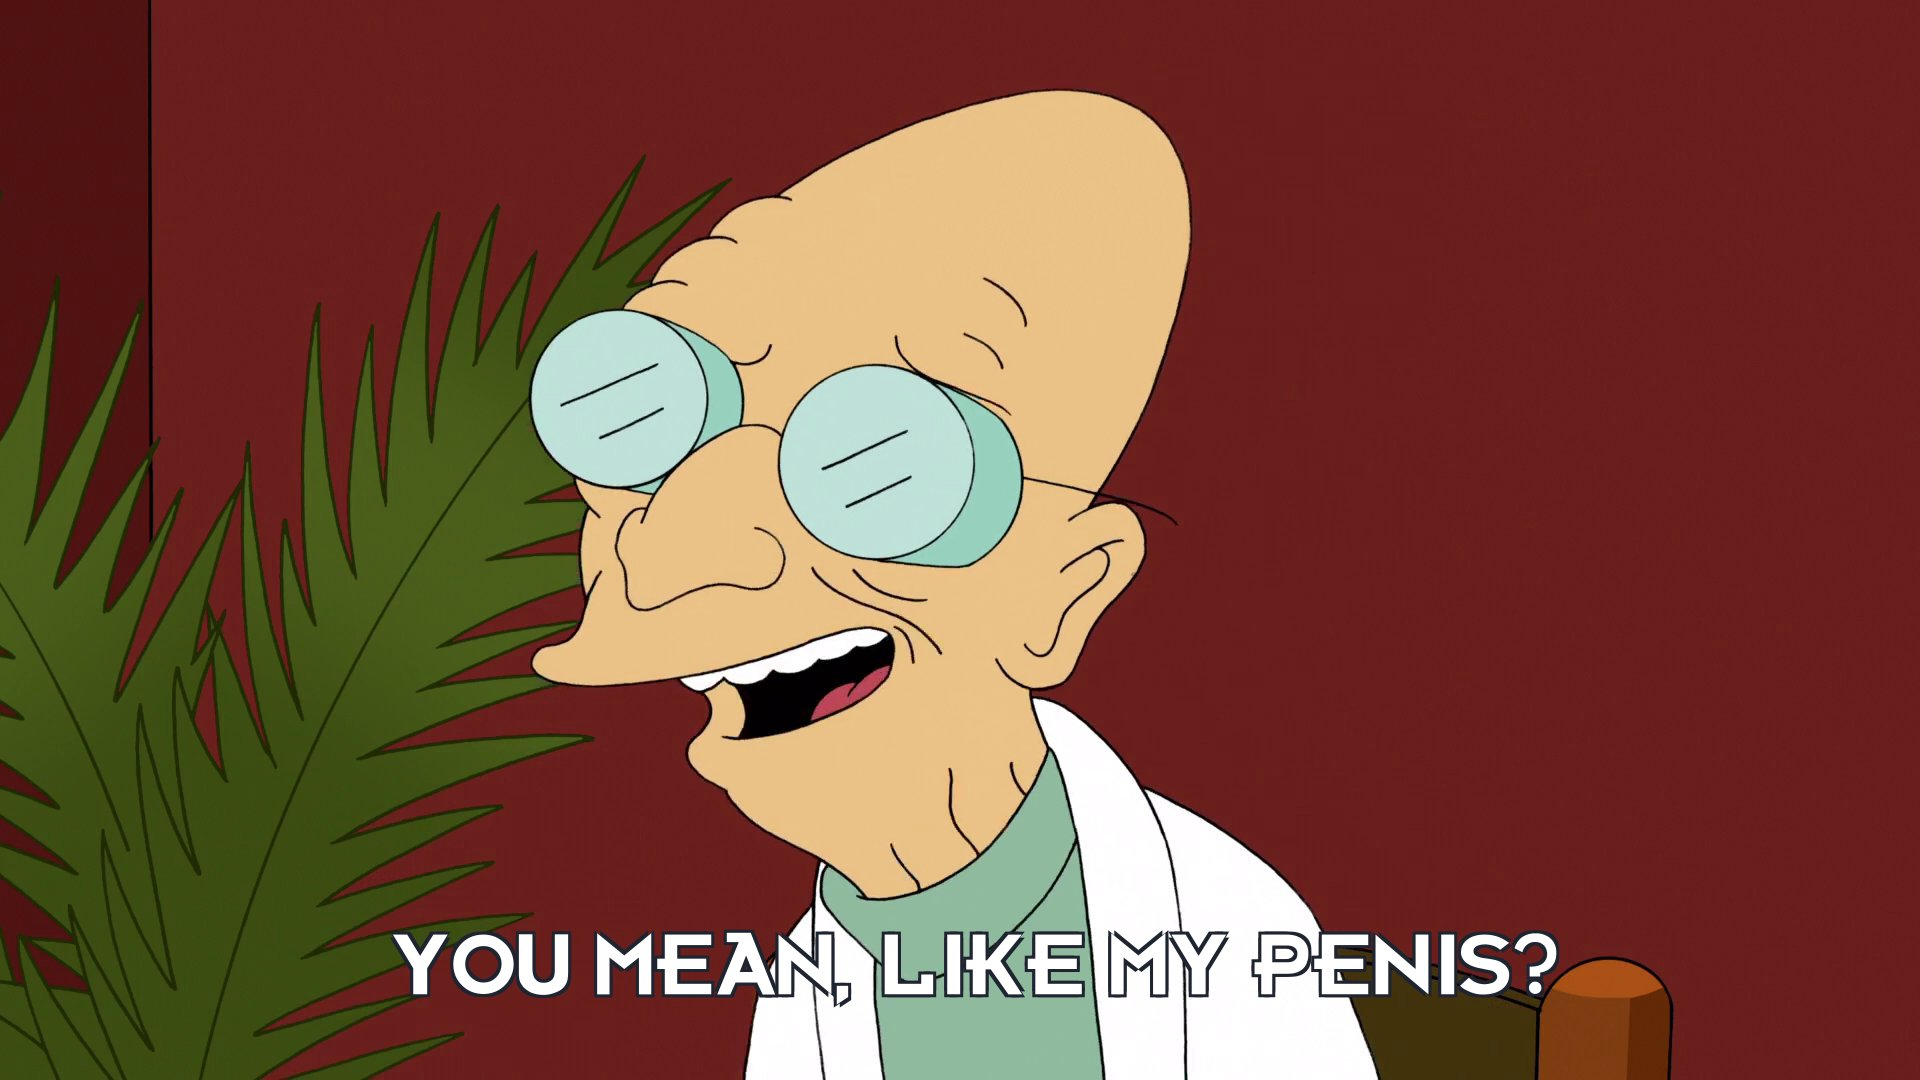 Turanga Leela [in Prof Hubert J Farnsworth's body]: You mean, like my penis?